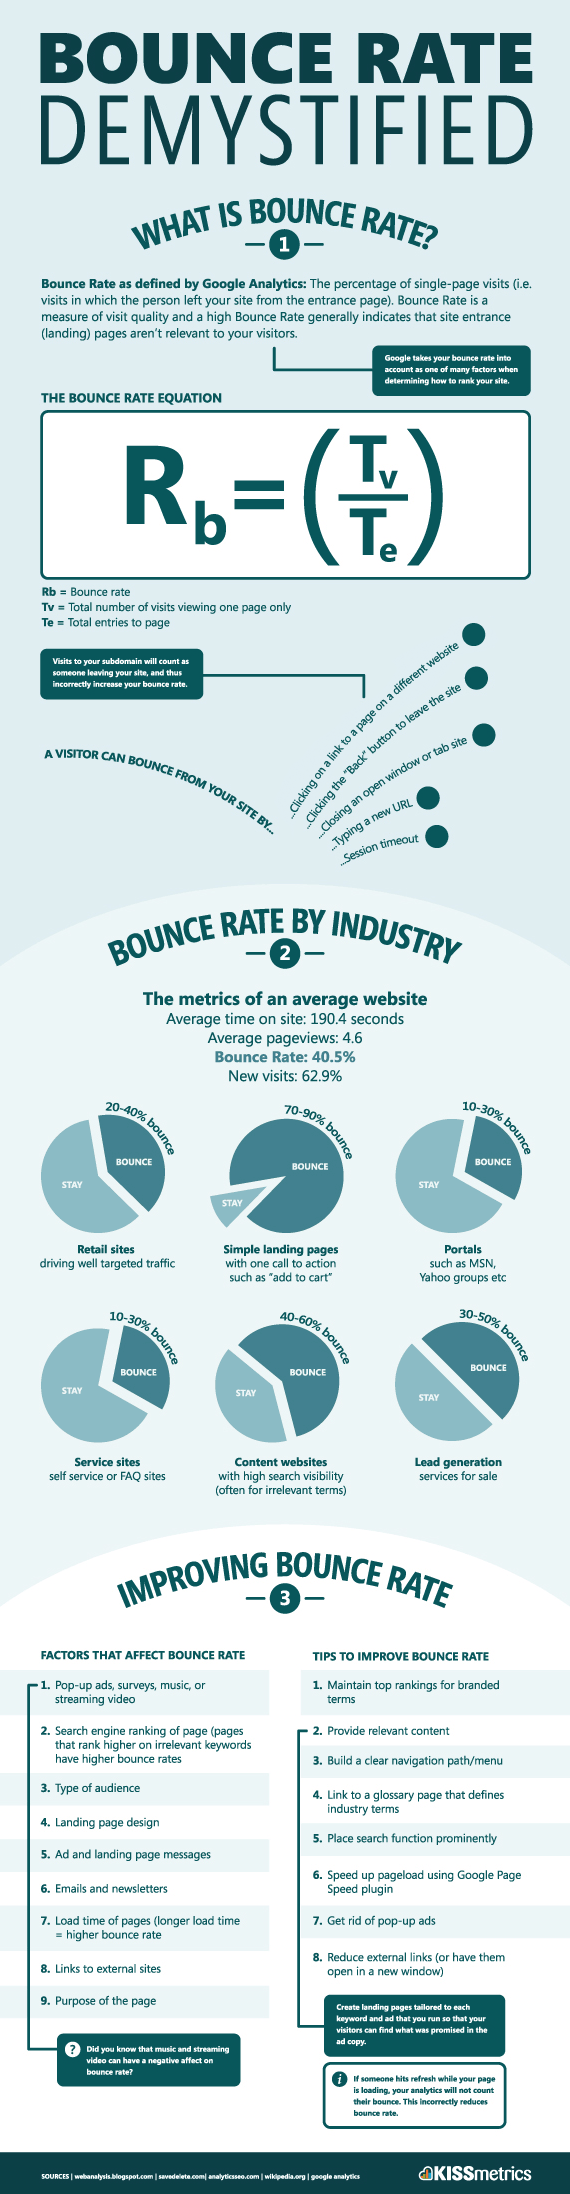 bounce rate kissmetrices infographic